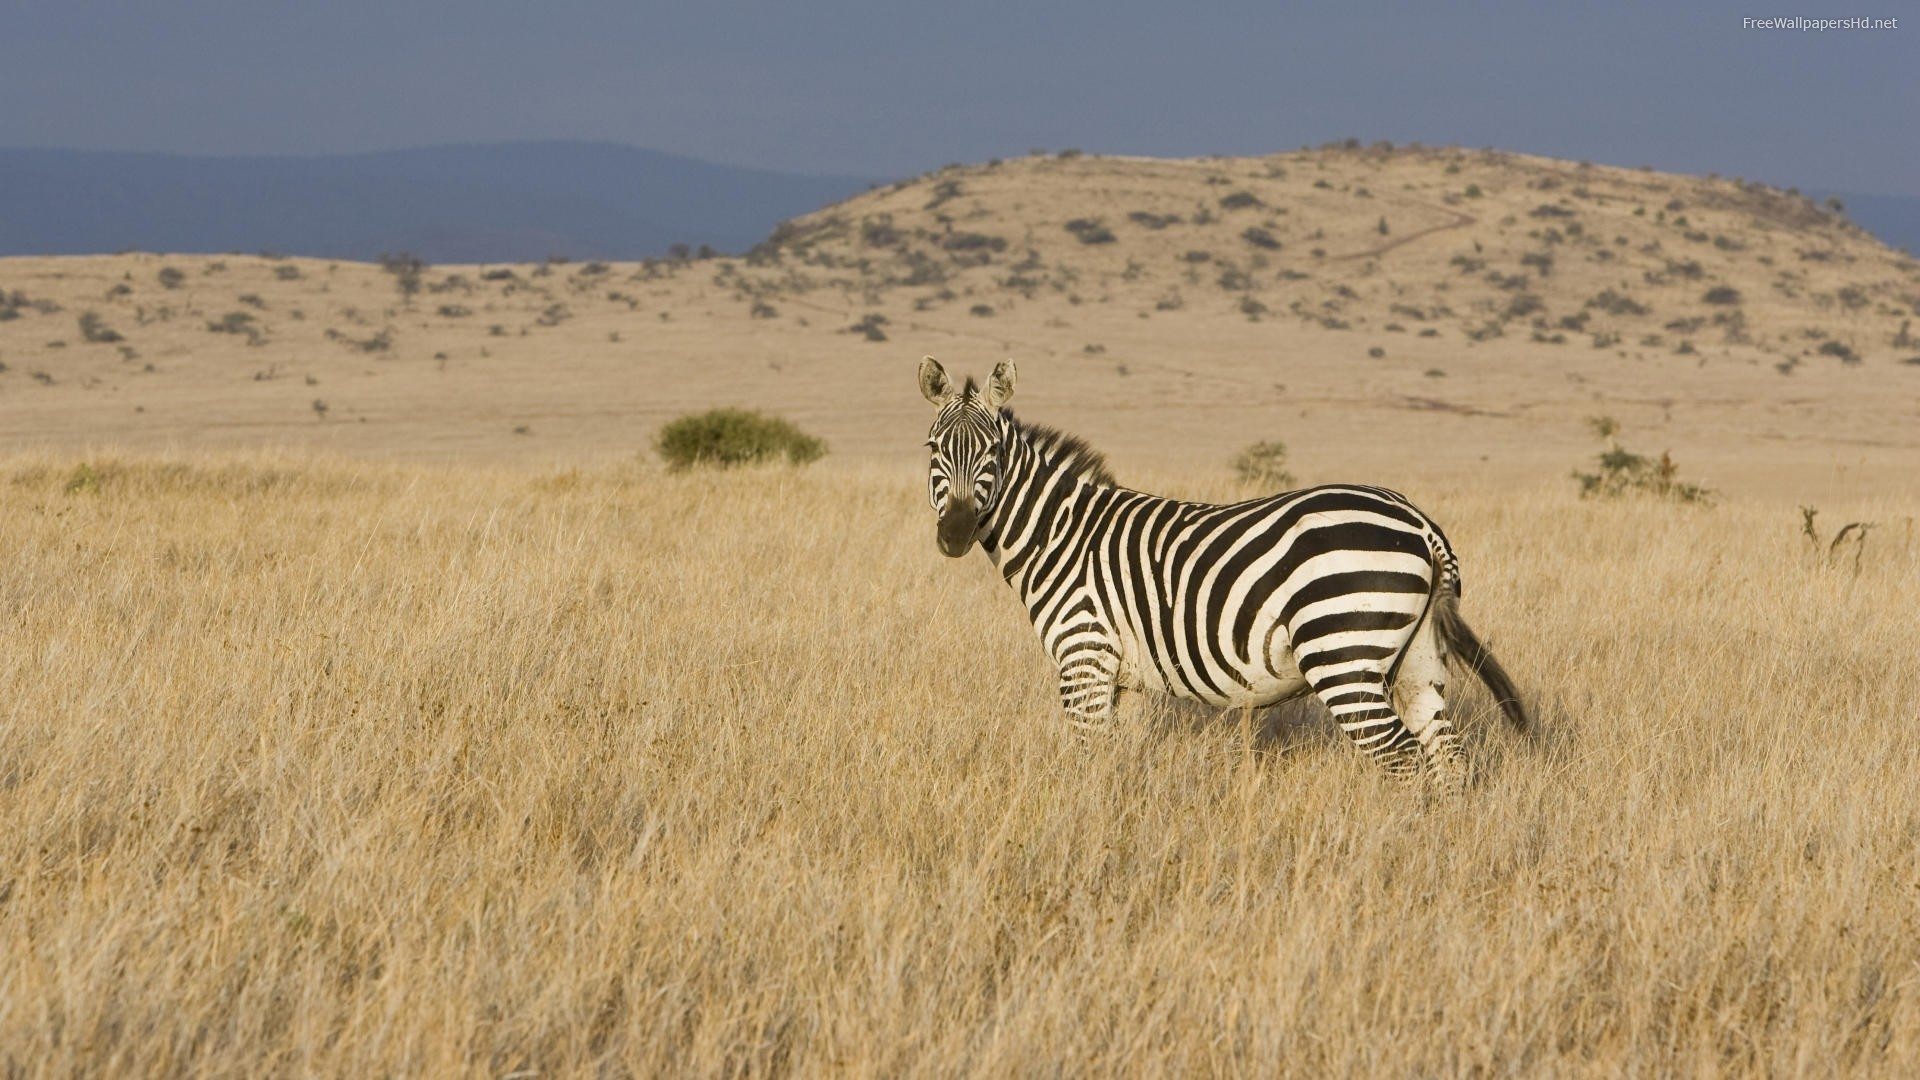 nature deserts wildlife zebras HD Wallpaper